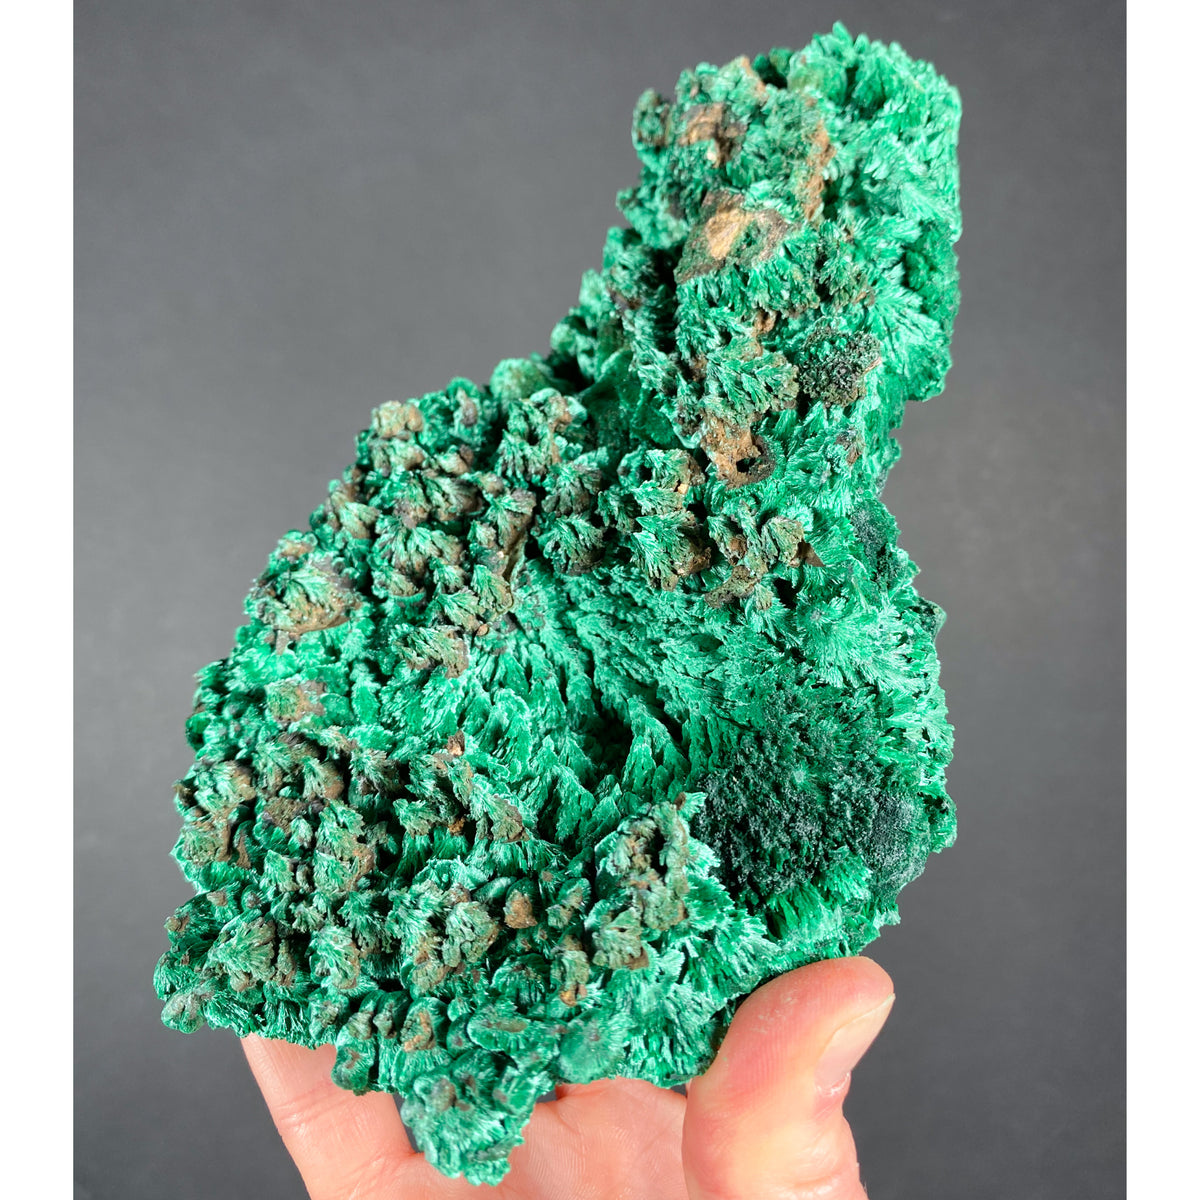 Large Raw Malachite Crystals Specimen from Democratic Republic of Congo